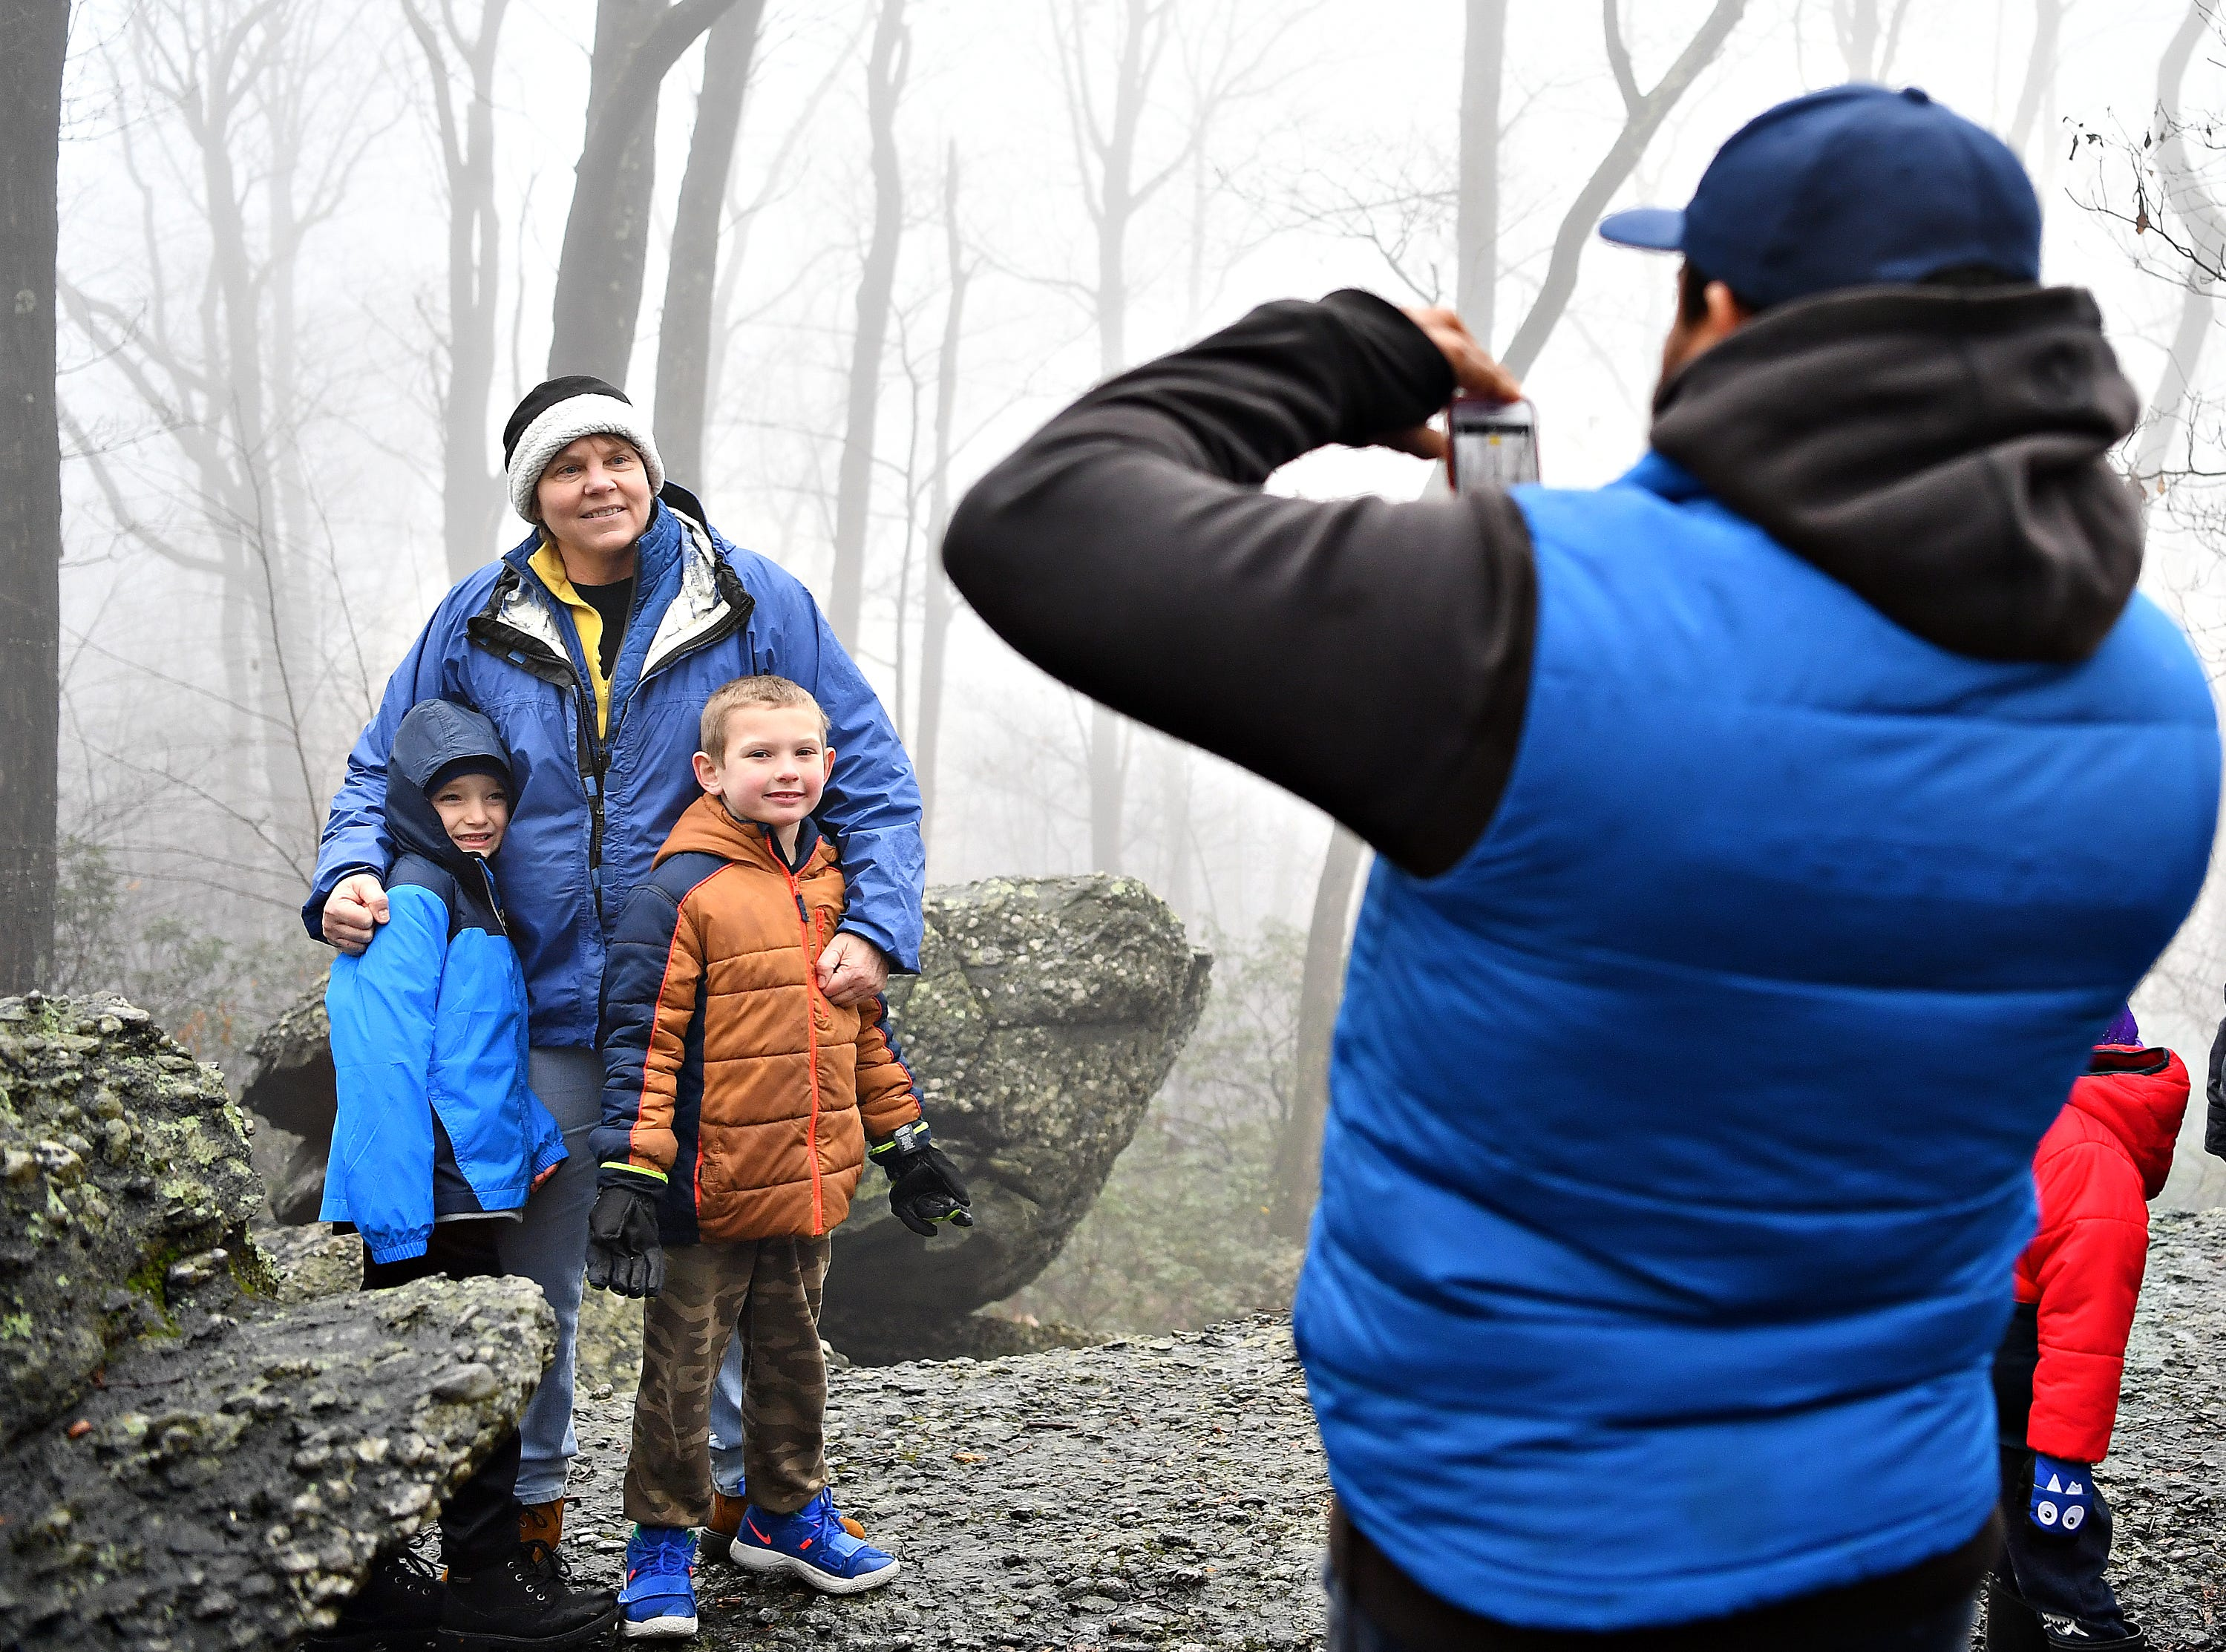 Tanya Merchant, back left, of East Manchester Township, poses for a photo with her great-nephew Mason Zercher, 6, front left, and neighbor Lucas Buckler, 6, during a Marshmallow Hike led by York County Parks Naturalist Kelsey Frey at Rocky Ridge Park in Springettsbury Township, Friday, Dec. 28, 2018. Dawn J. Sagert photo